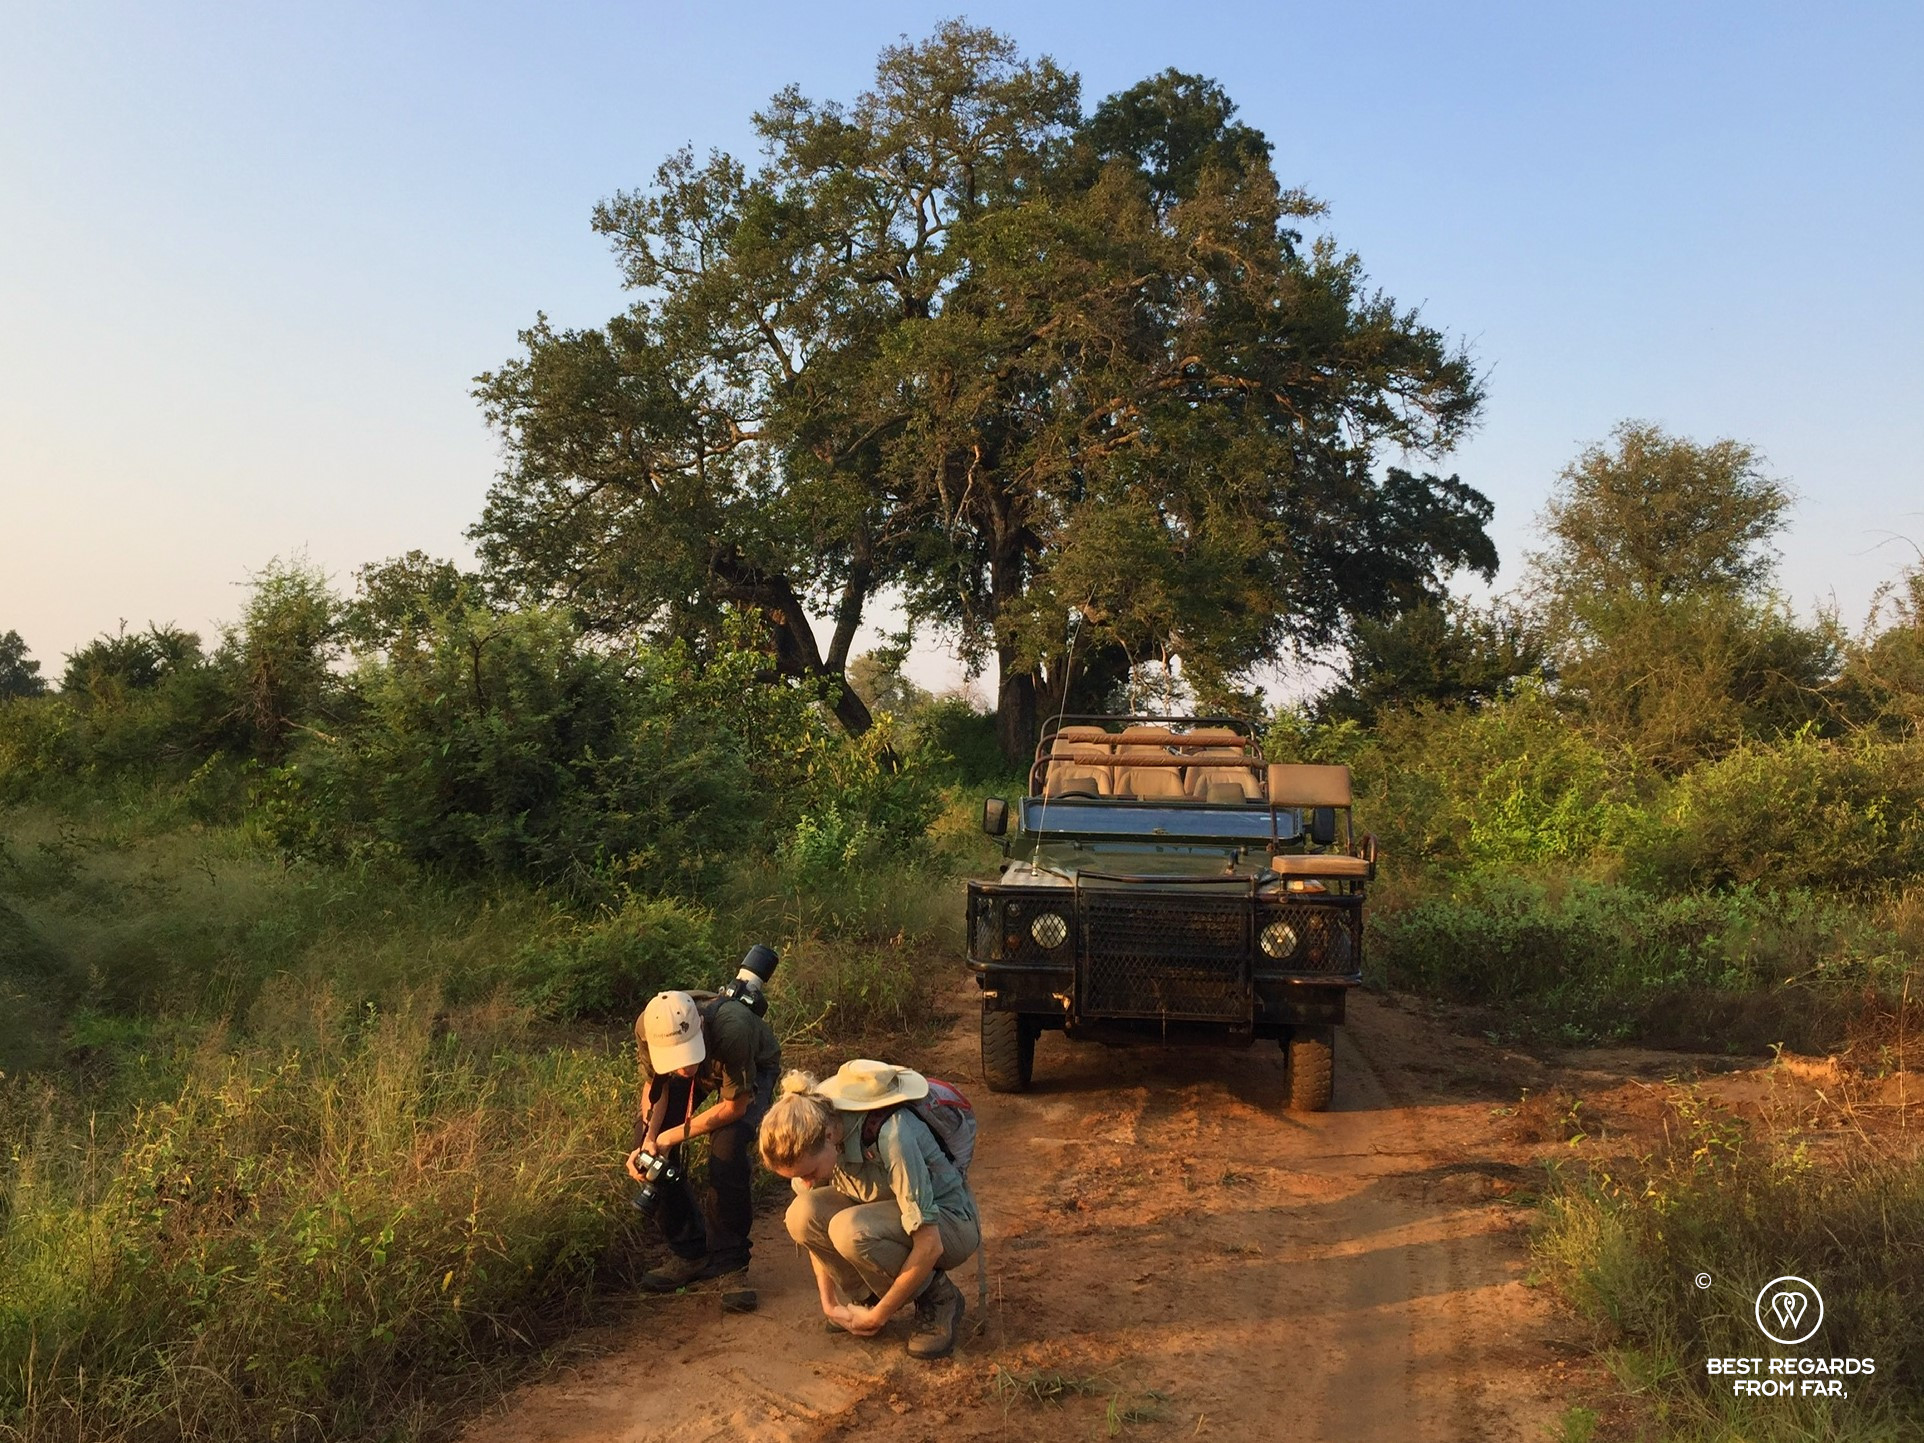 2 safari goers studying tracks in the Selati Game Reserve in Greater Kruger